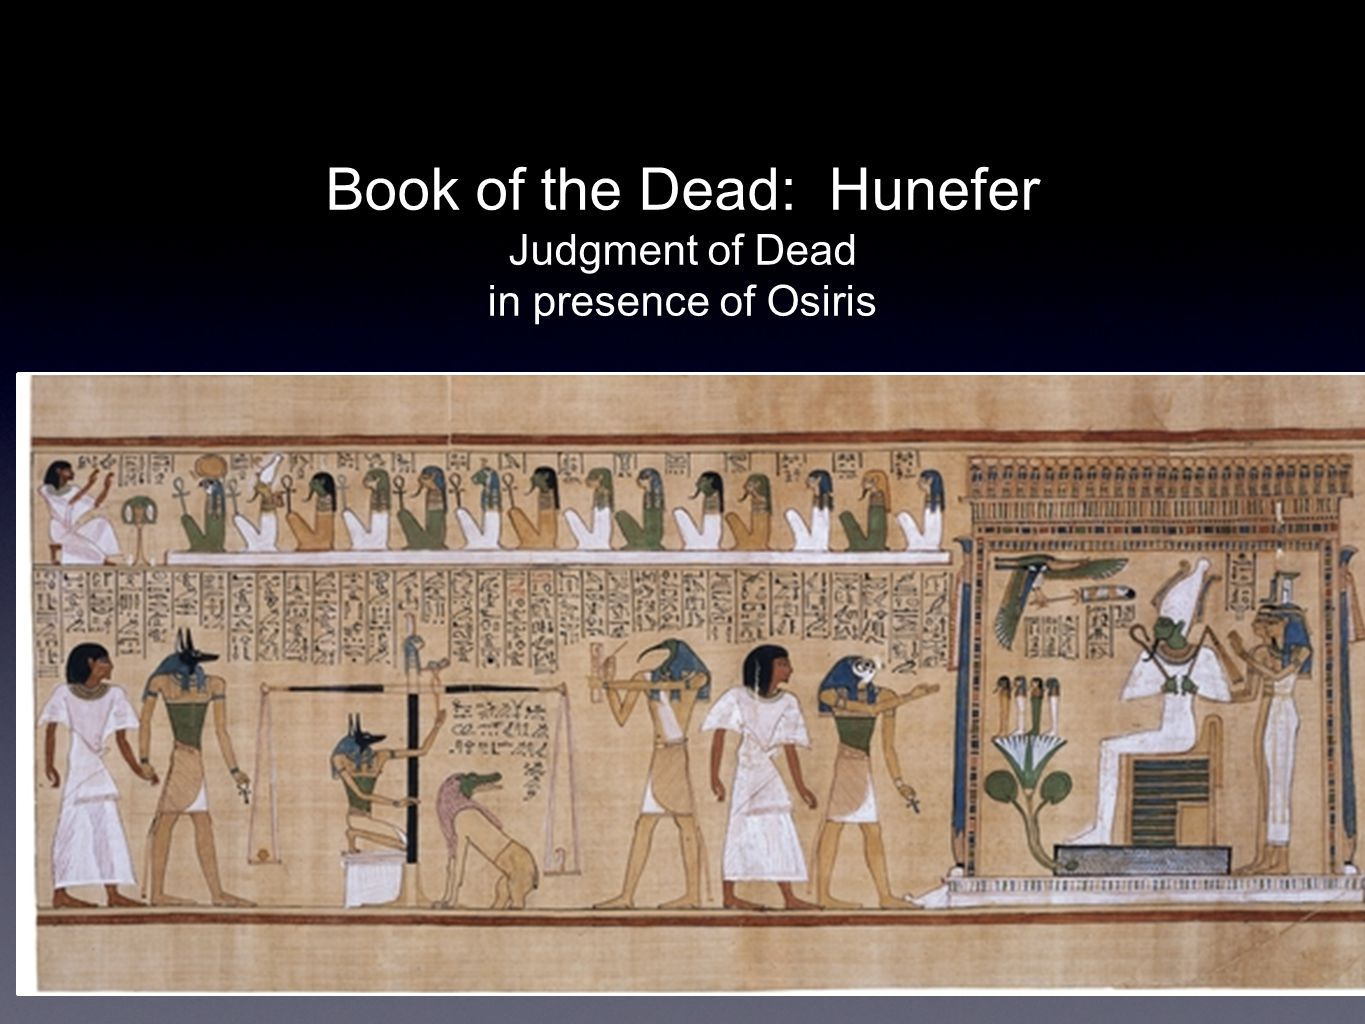 Book of the Dead: Hunefer Judgment of Dead in presence of Osiris